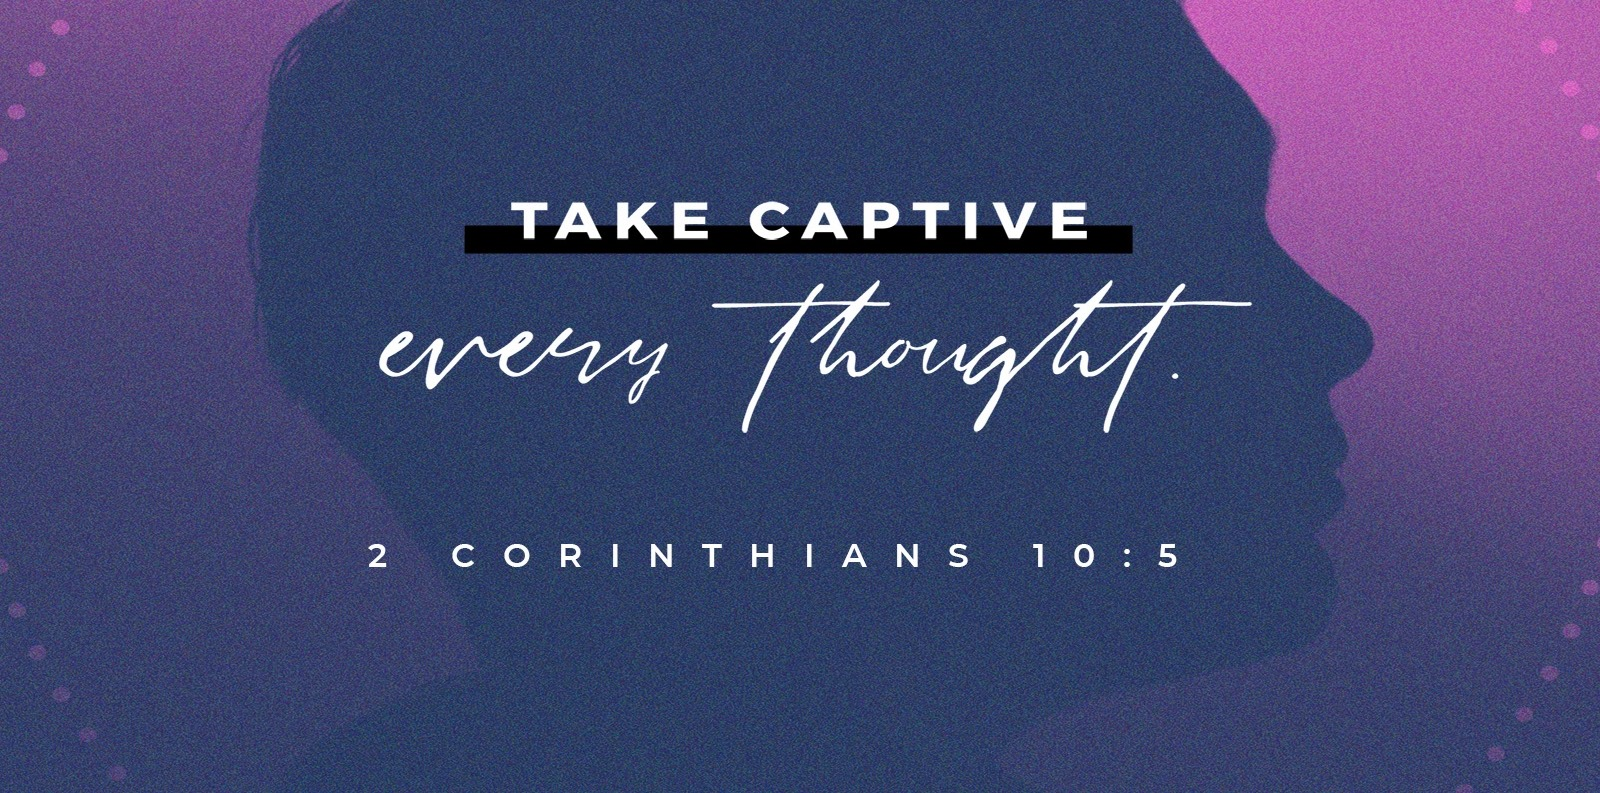 May 27: Take Captive Every Thought, Pt. 9